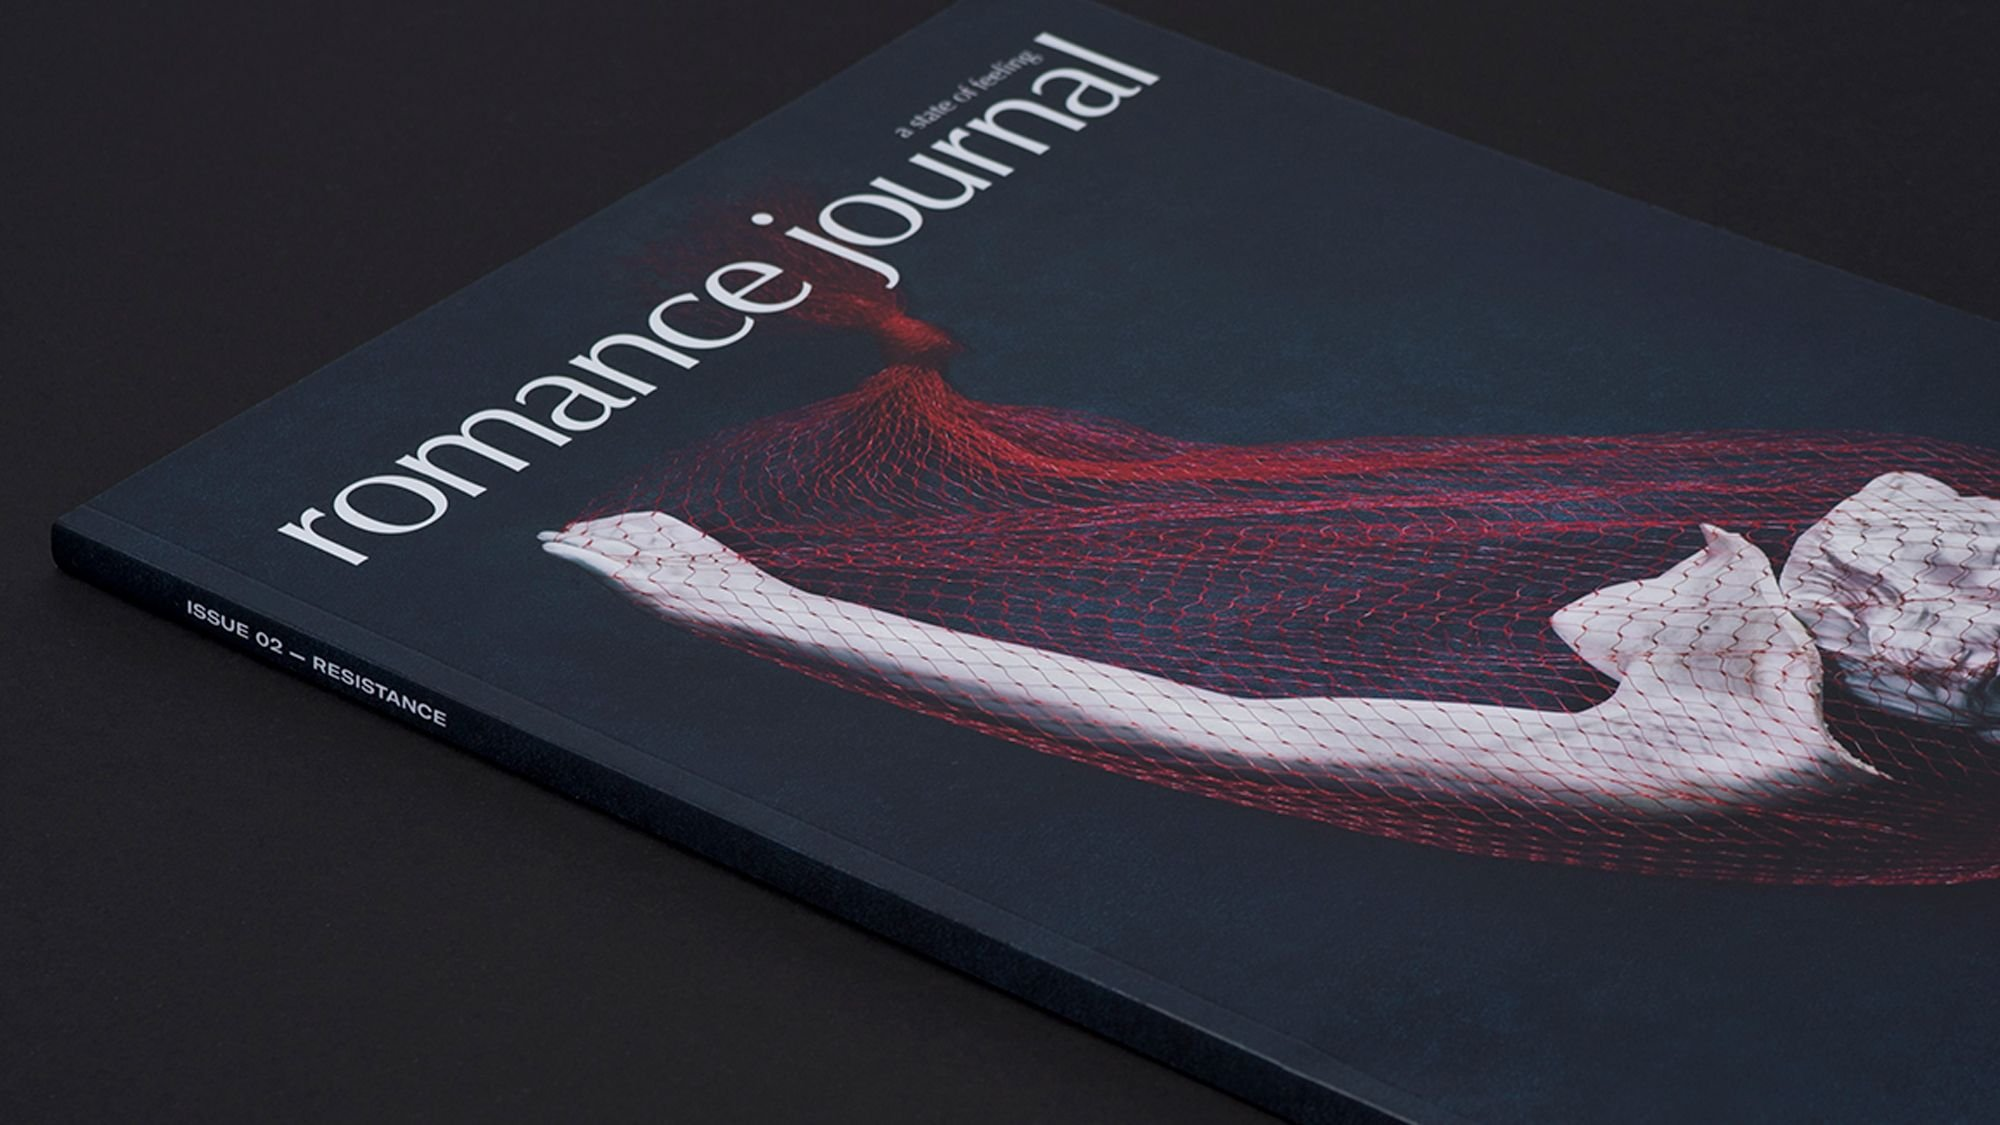 Close up of Romance Journal Issue 02 cover, sculpture wrapped in netting on black background. Publication design, art direction, print design by RoAndCo.